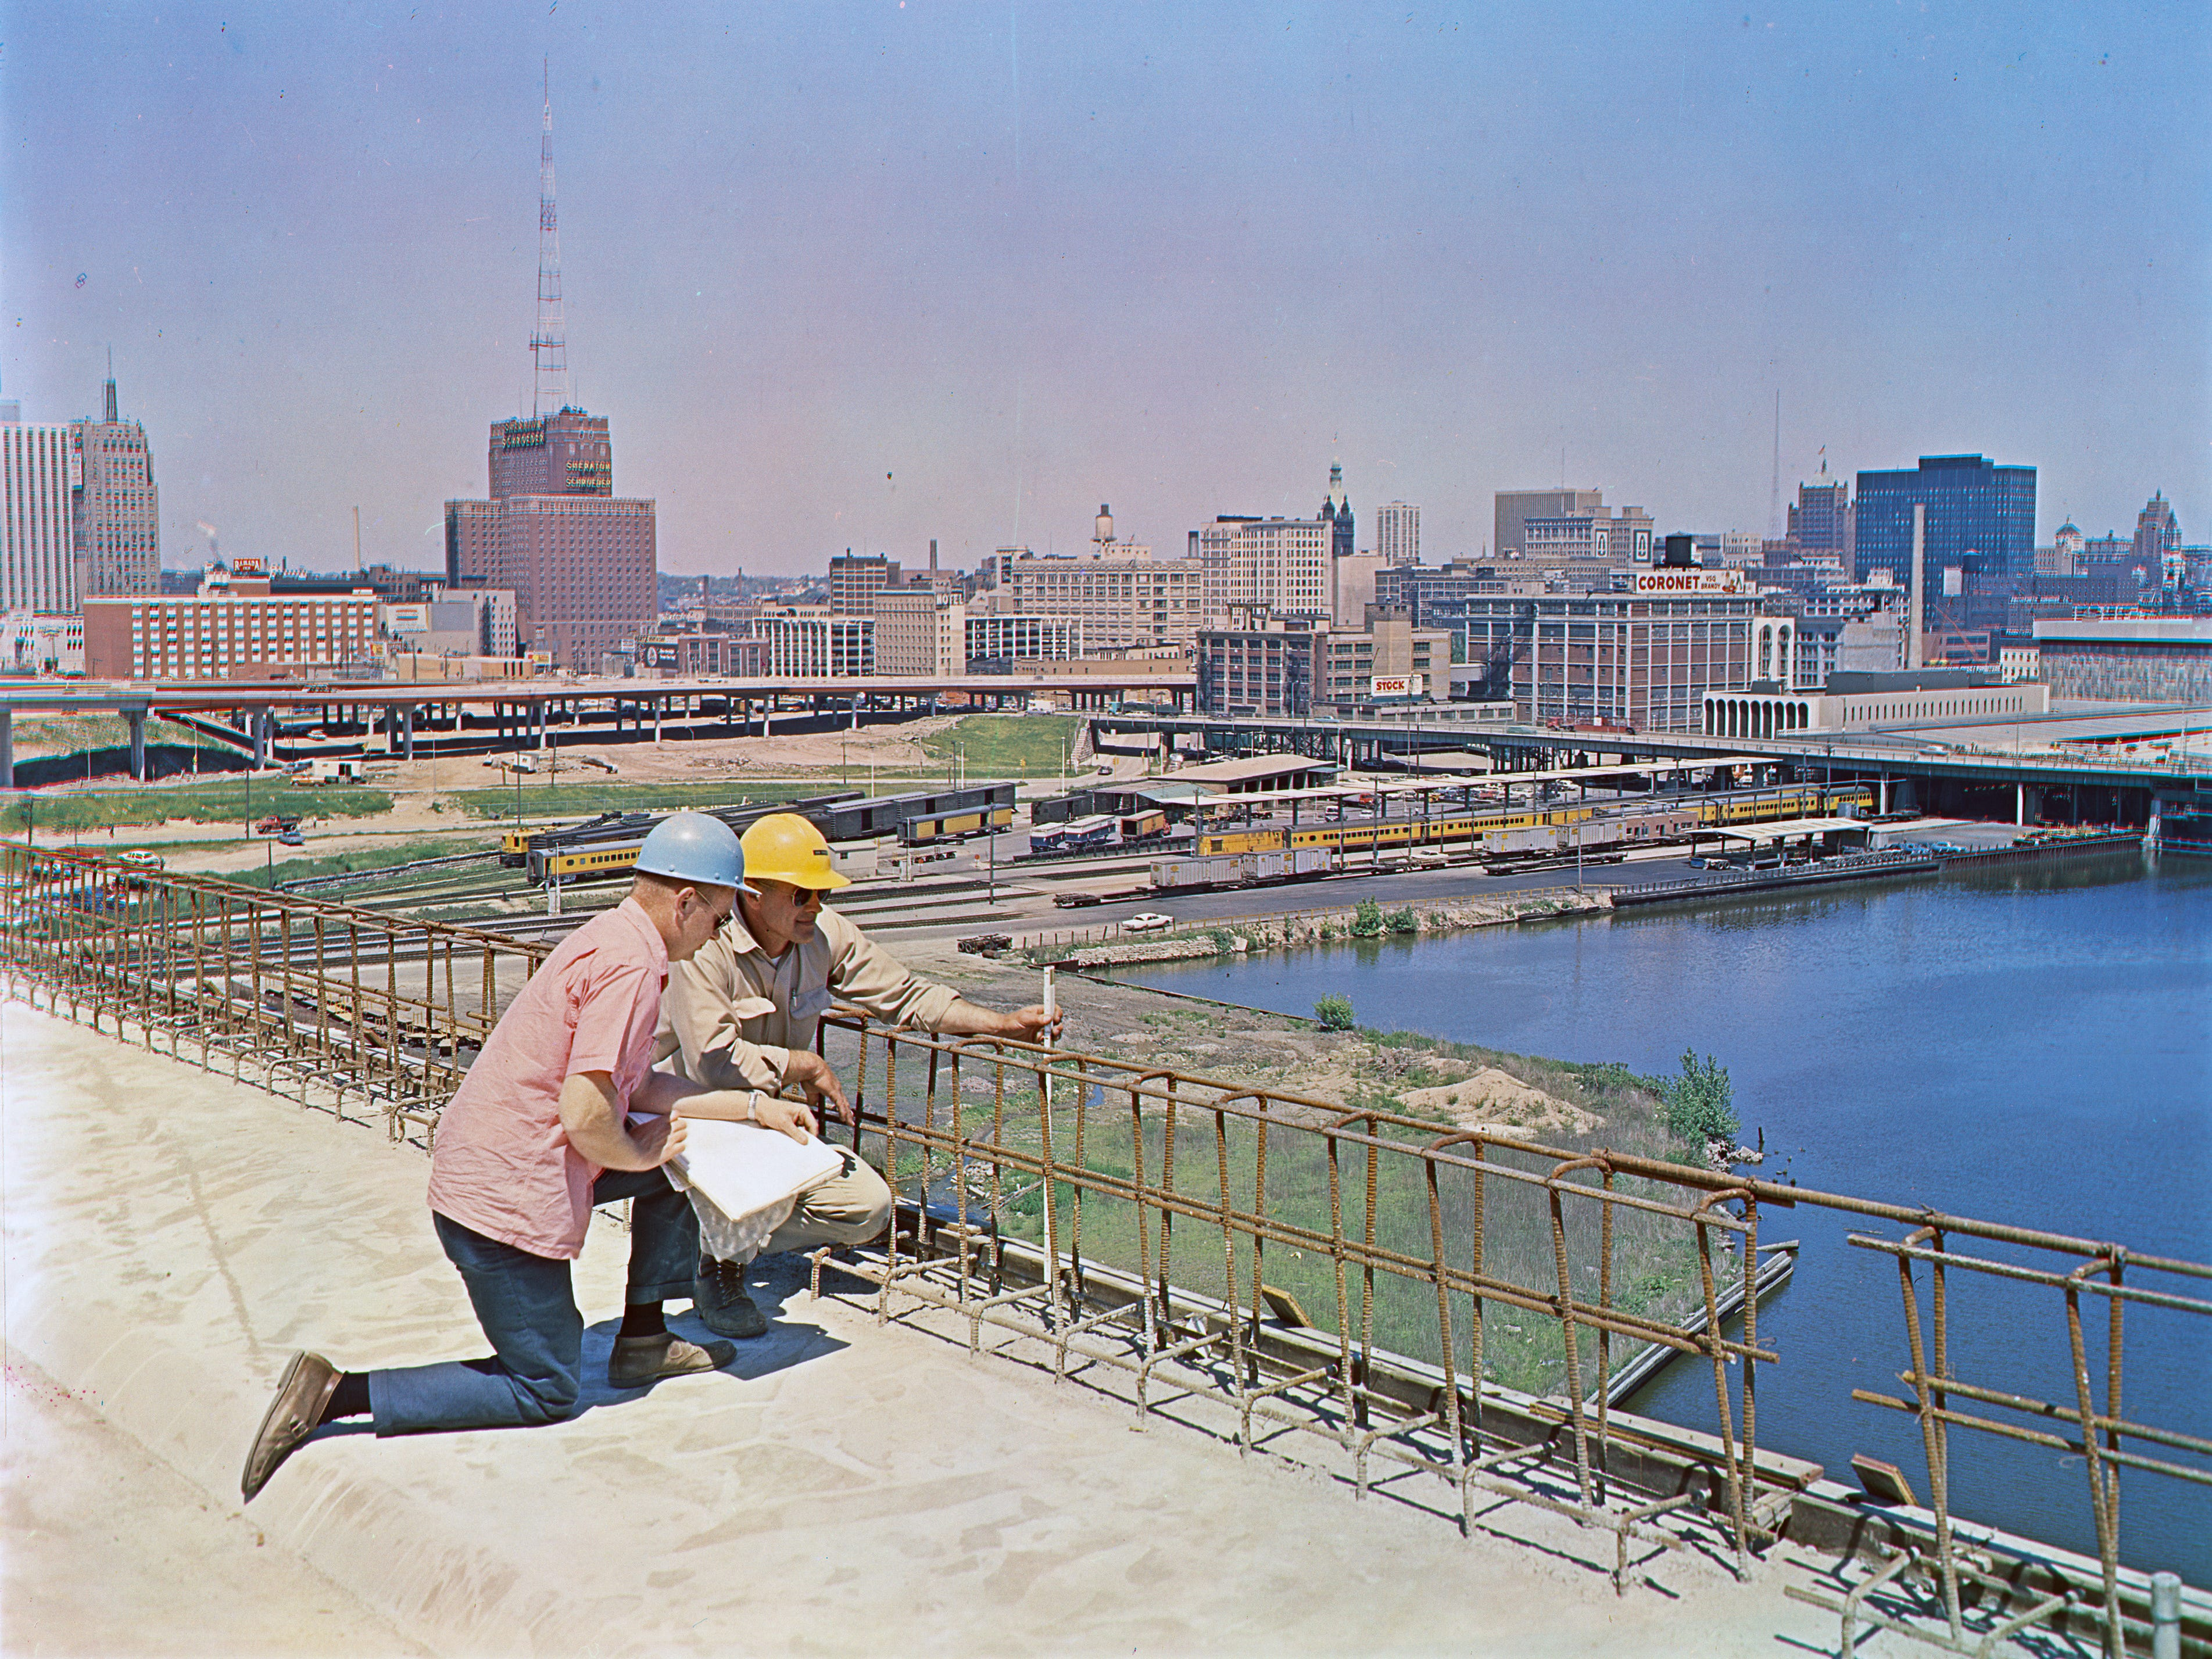 Two engineers on the North-South Freeway project check reinforcing rods on the bridge above the Menomonee River valley, running into the Marquette Interchange, during construction of the heart of the Milwaukee freeway system during the summer of 1968. The Marquette Interchange was opened to traffic on Dec. 23, 1968, linking the north and south sides of the city. This color-separated photo was published in the June 17, 1968, Milwaukee Journal.